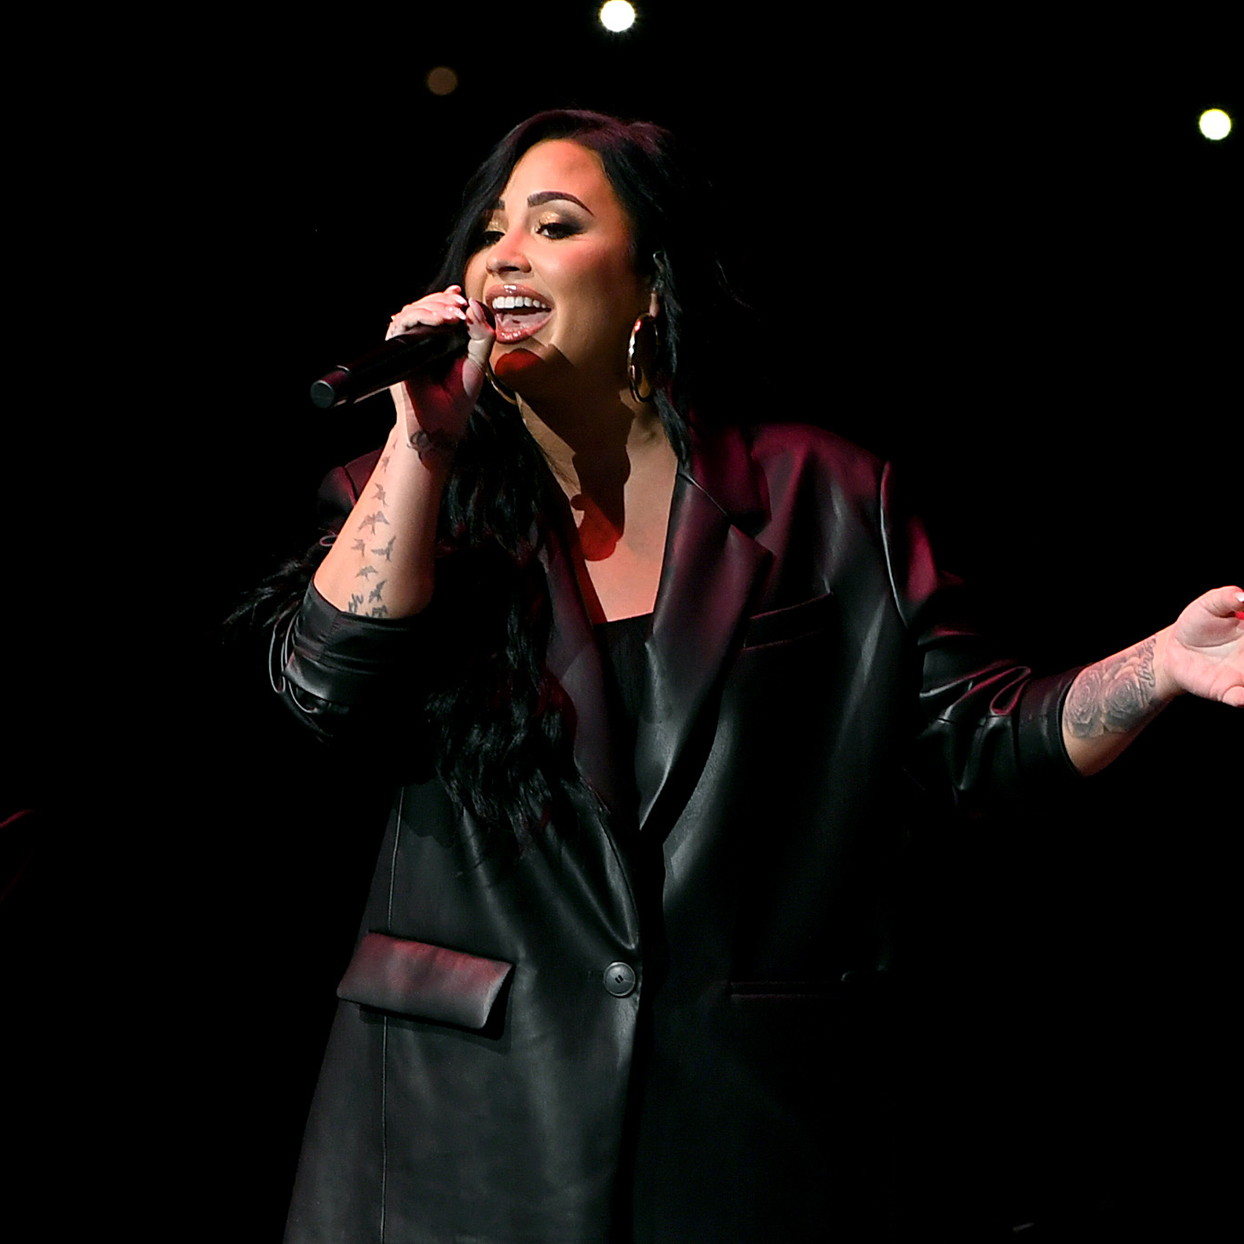 Demi Lovato performs onstage during the Bud Light Super Bowl Music Fest on February 01, 2020 in Miami, Florida.